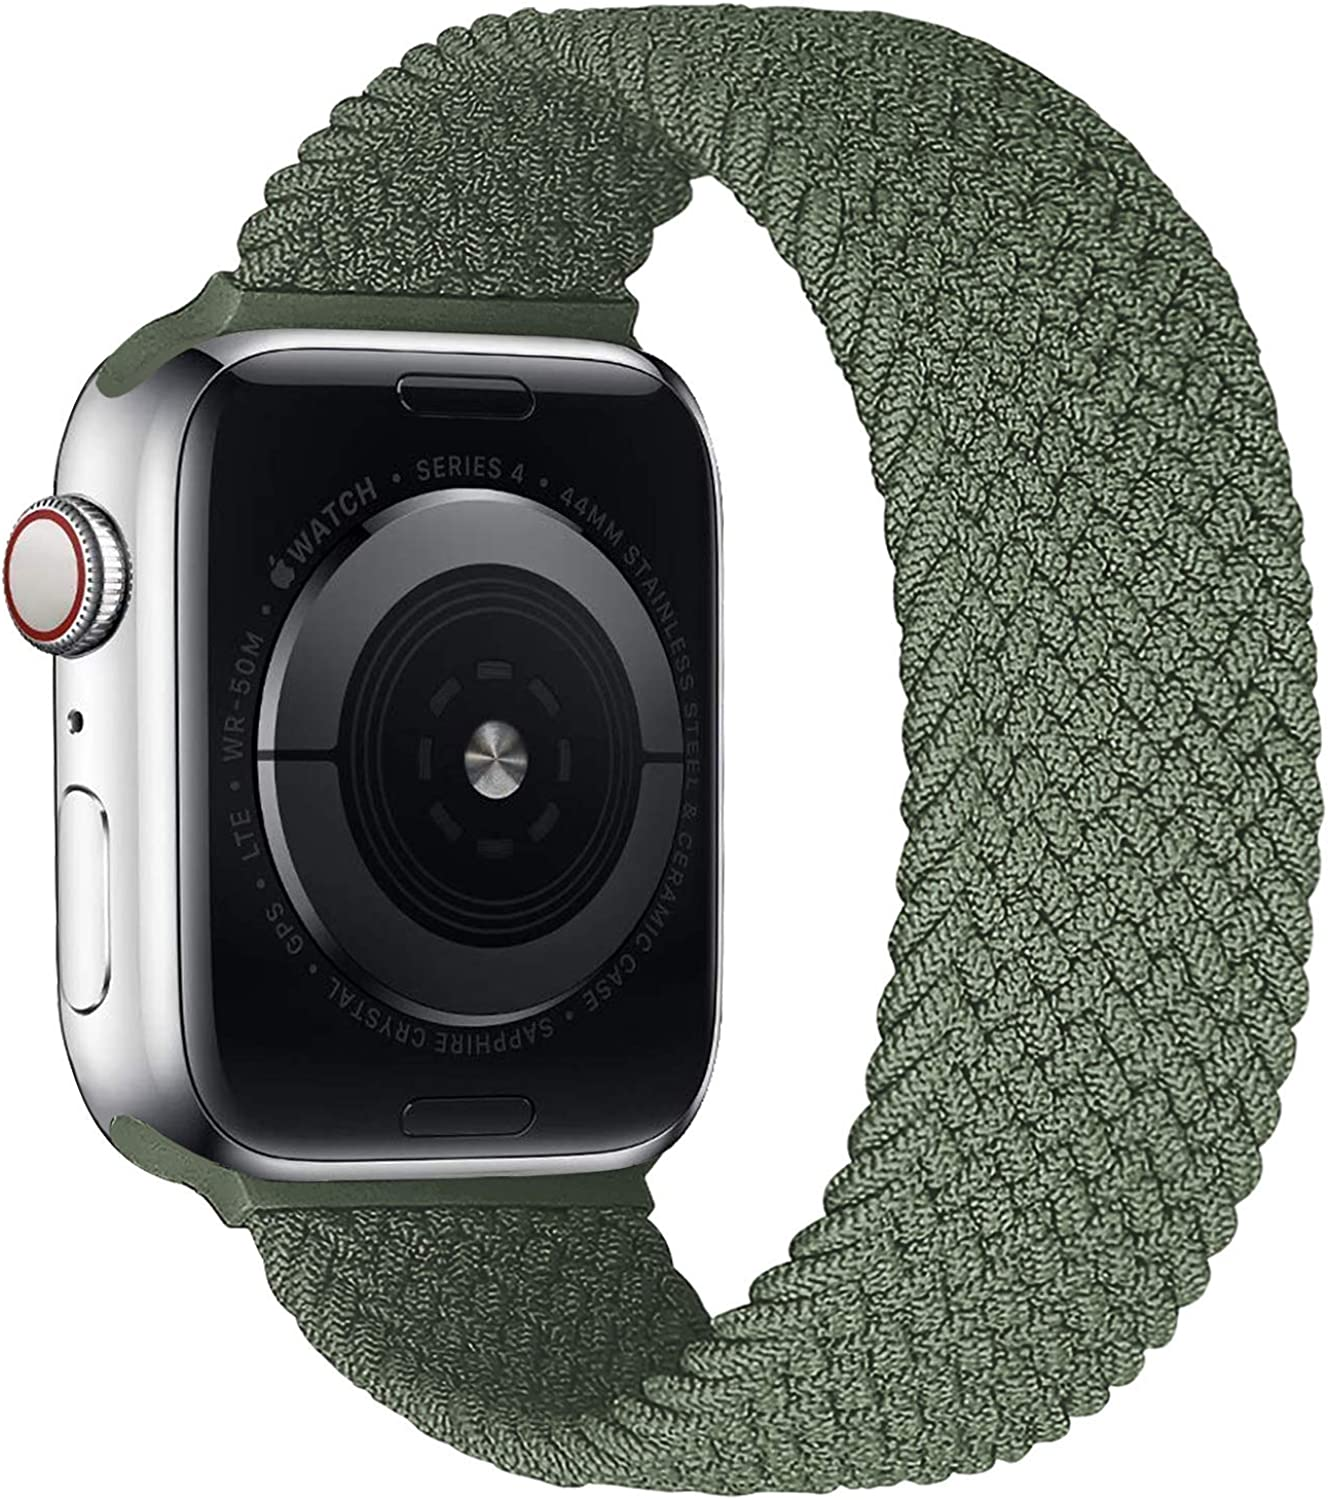 iBazal Sport Stretchy Braided Nylon Band Compatible with iWatch Band 42mm 44mm iWatch Series 6 5 SE 4 3 2 1 Strap,Sport Elastic Women Men Soft Braided Replacement Wristband